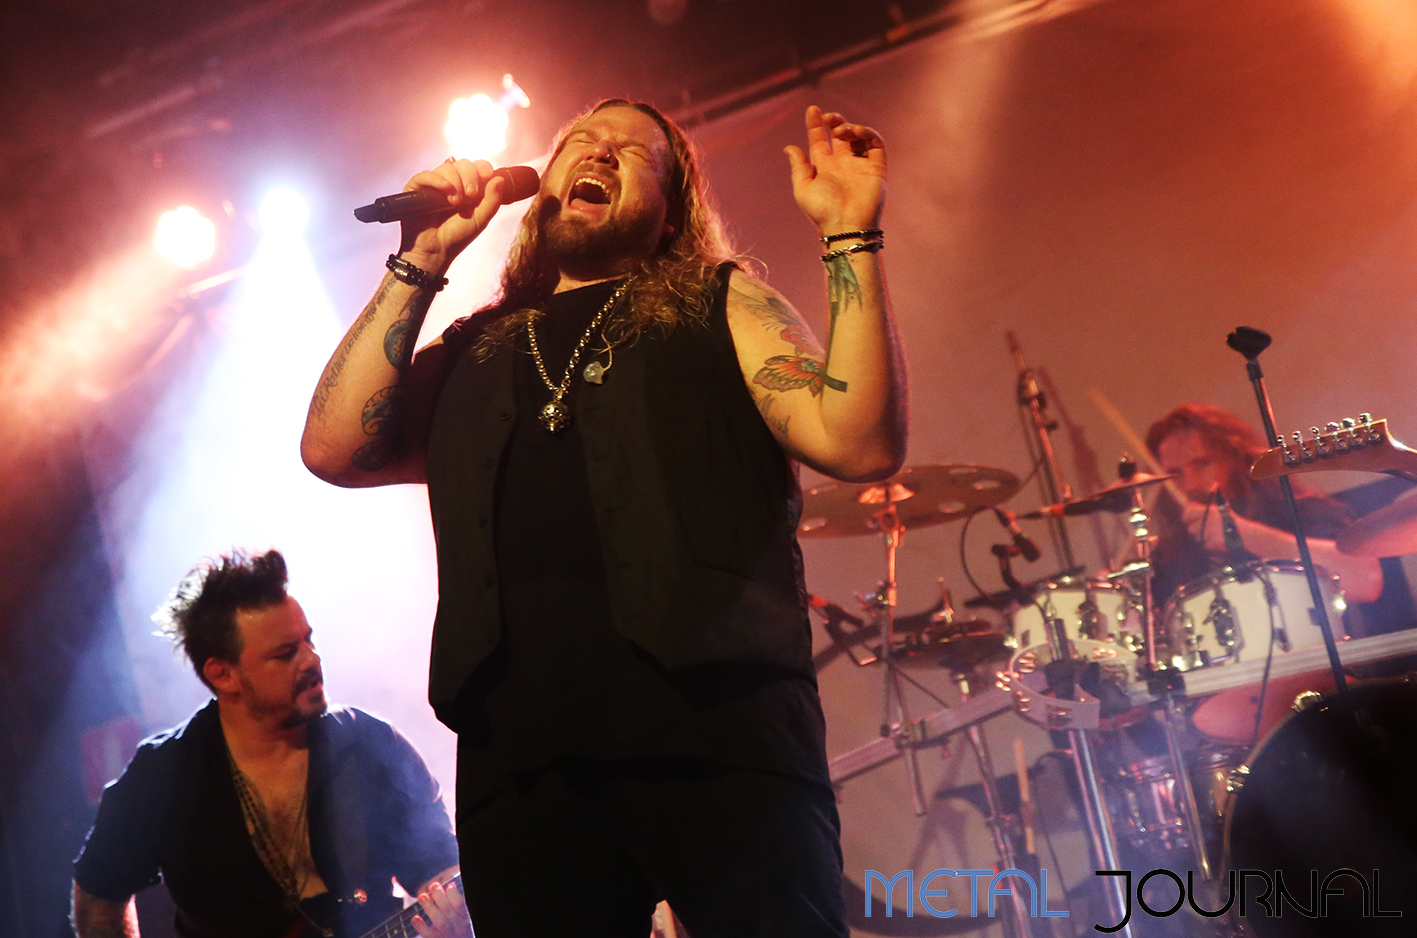 inglorious - metal journal 2019 pic 4